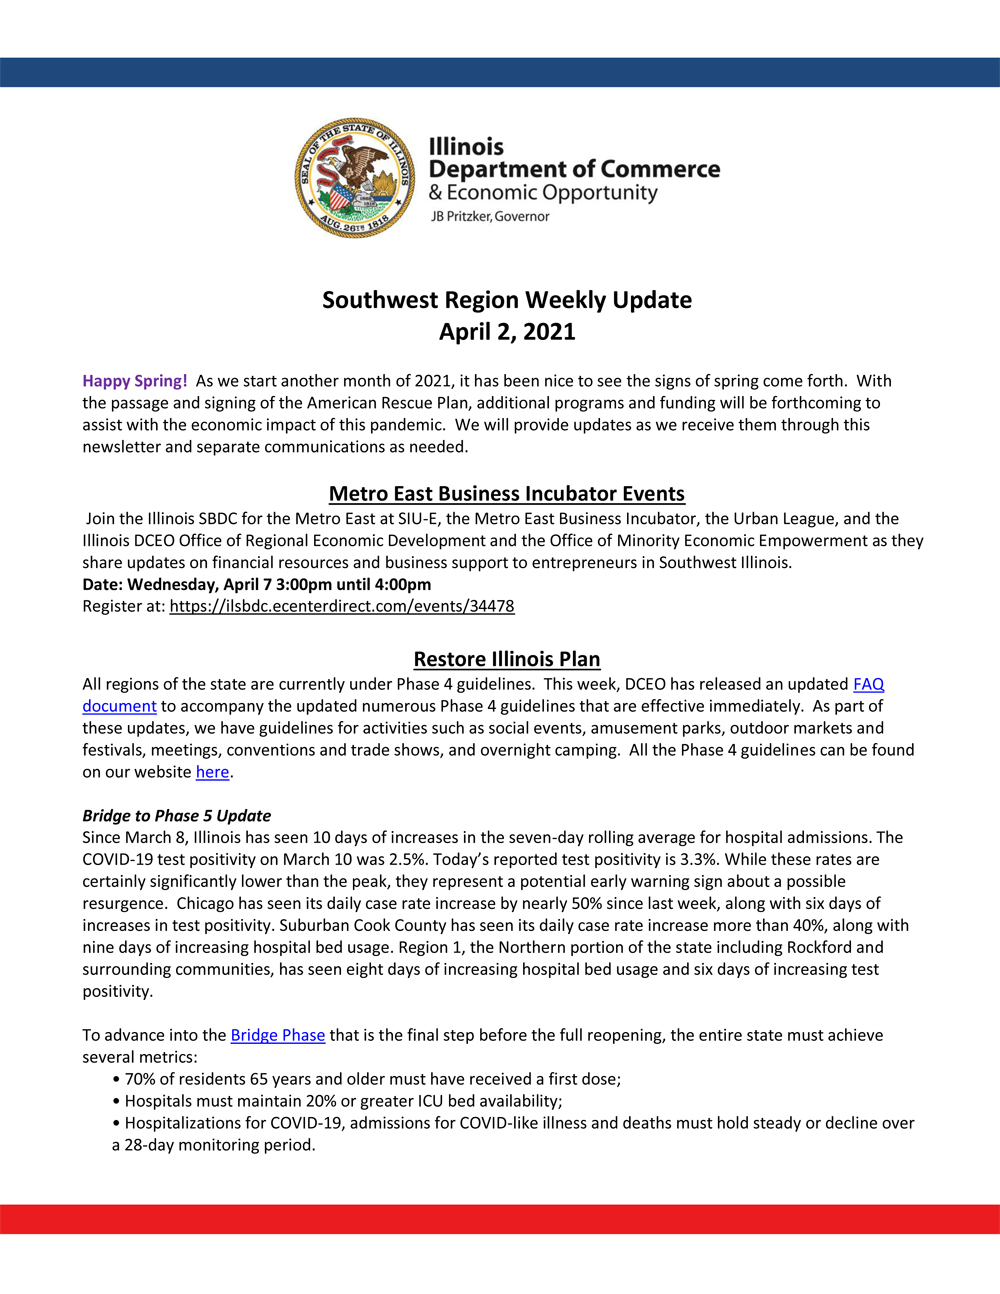 IL Department of Commerce SW Regional Weekly Update 4-2-21